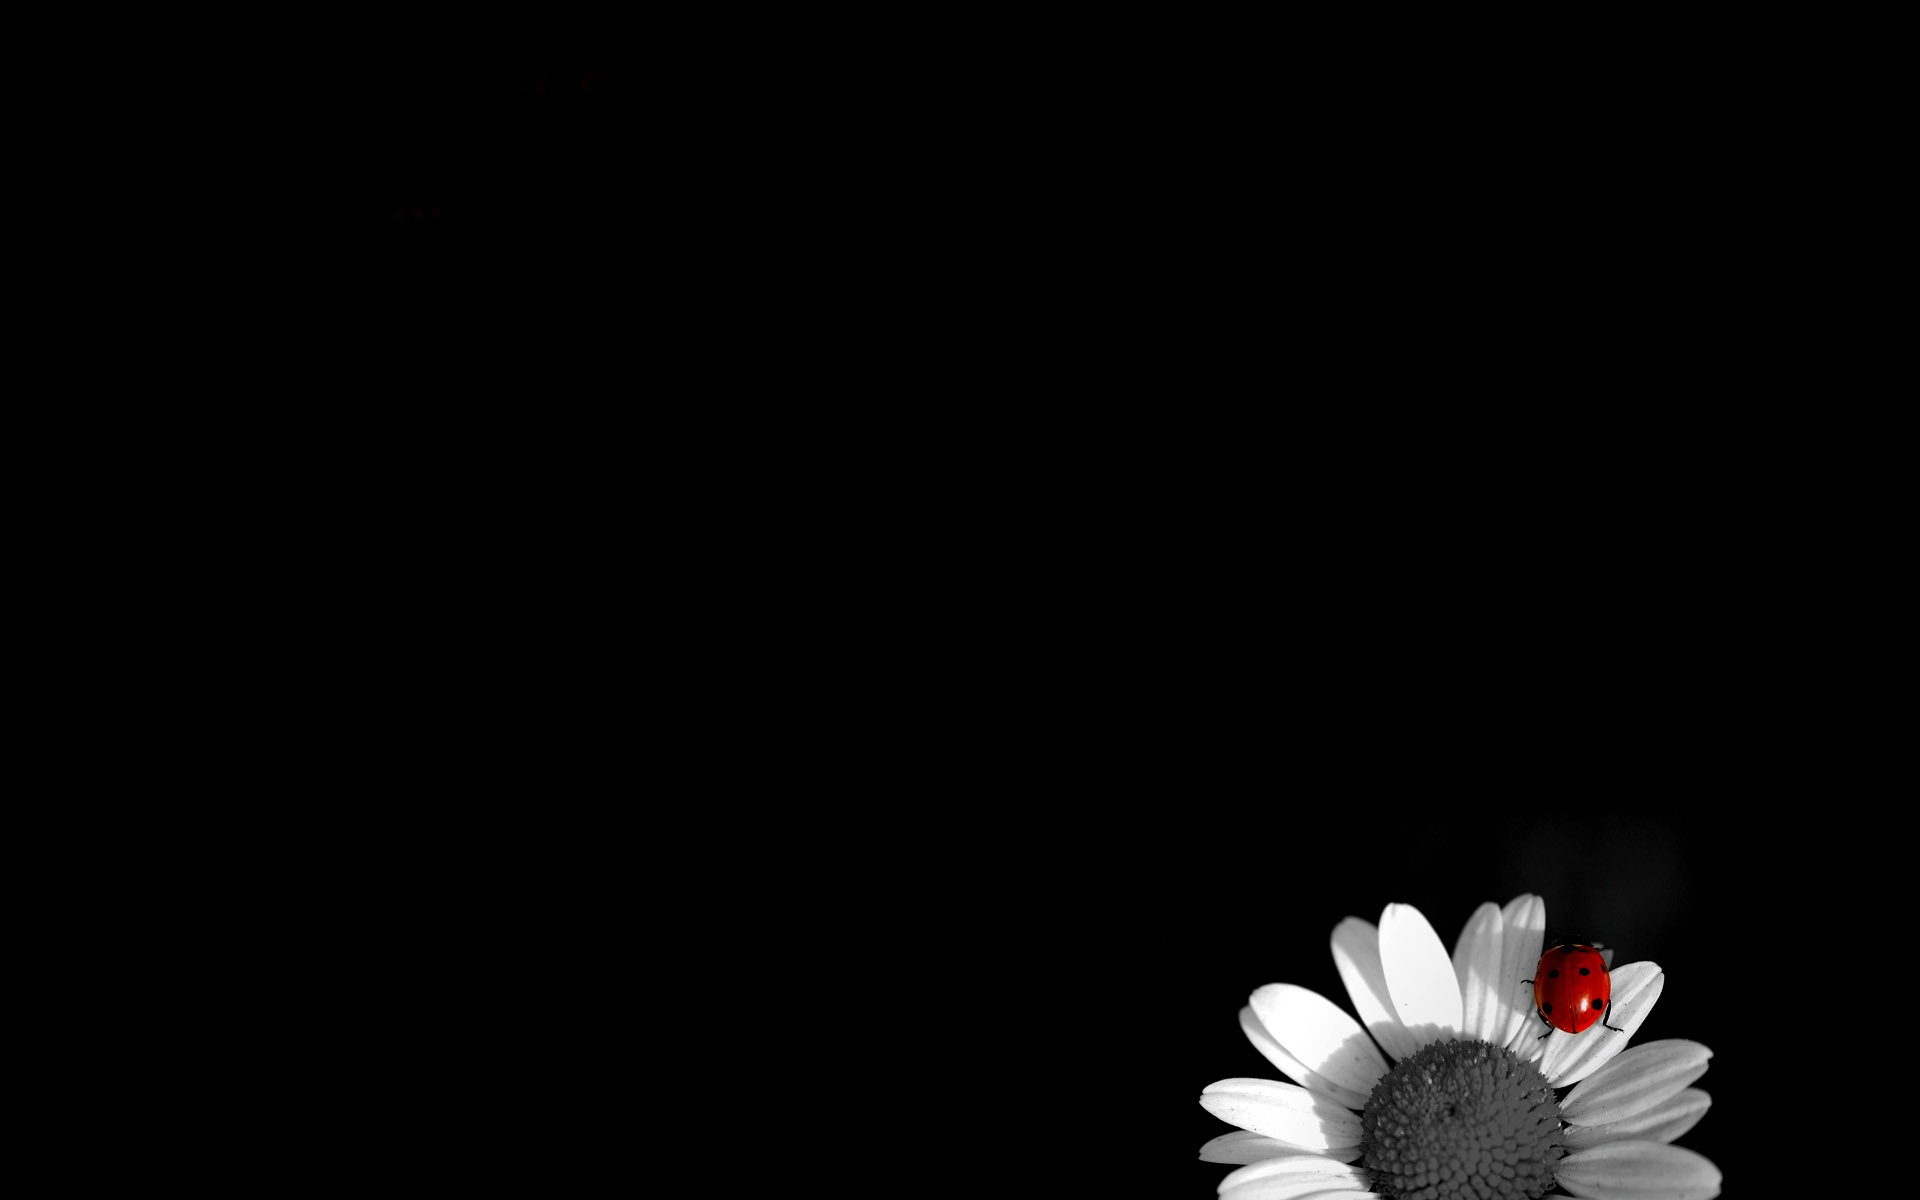 Black And White Backgrounds 7681 Hd Wallpapers in Others   Imagesci 1920x1200